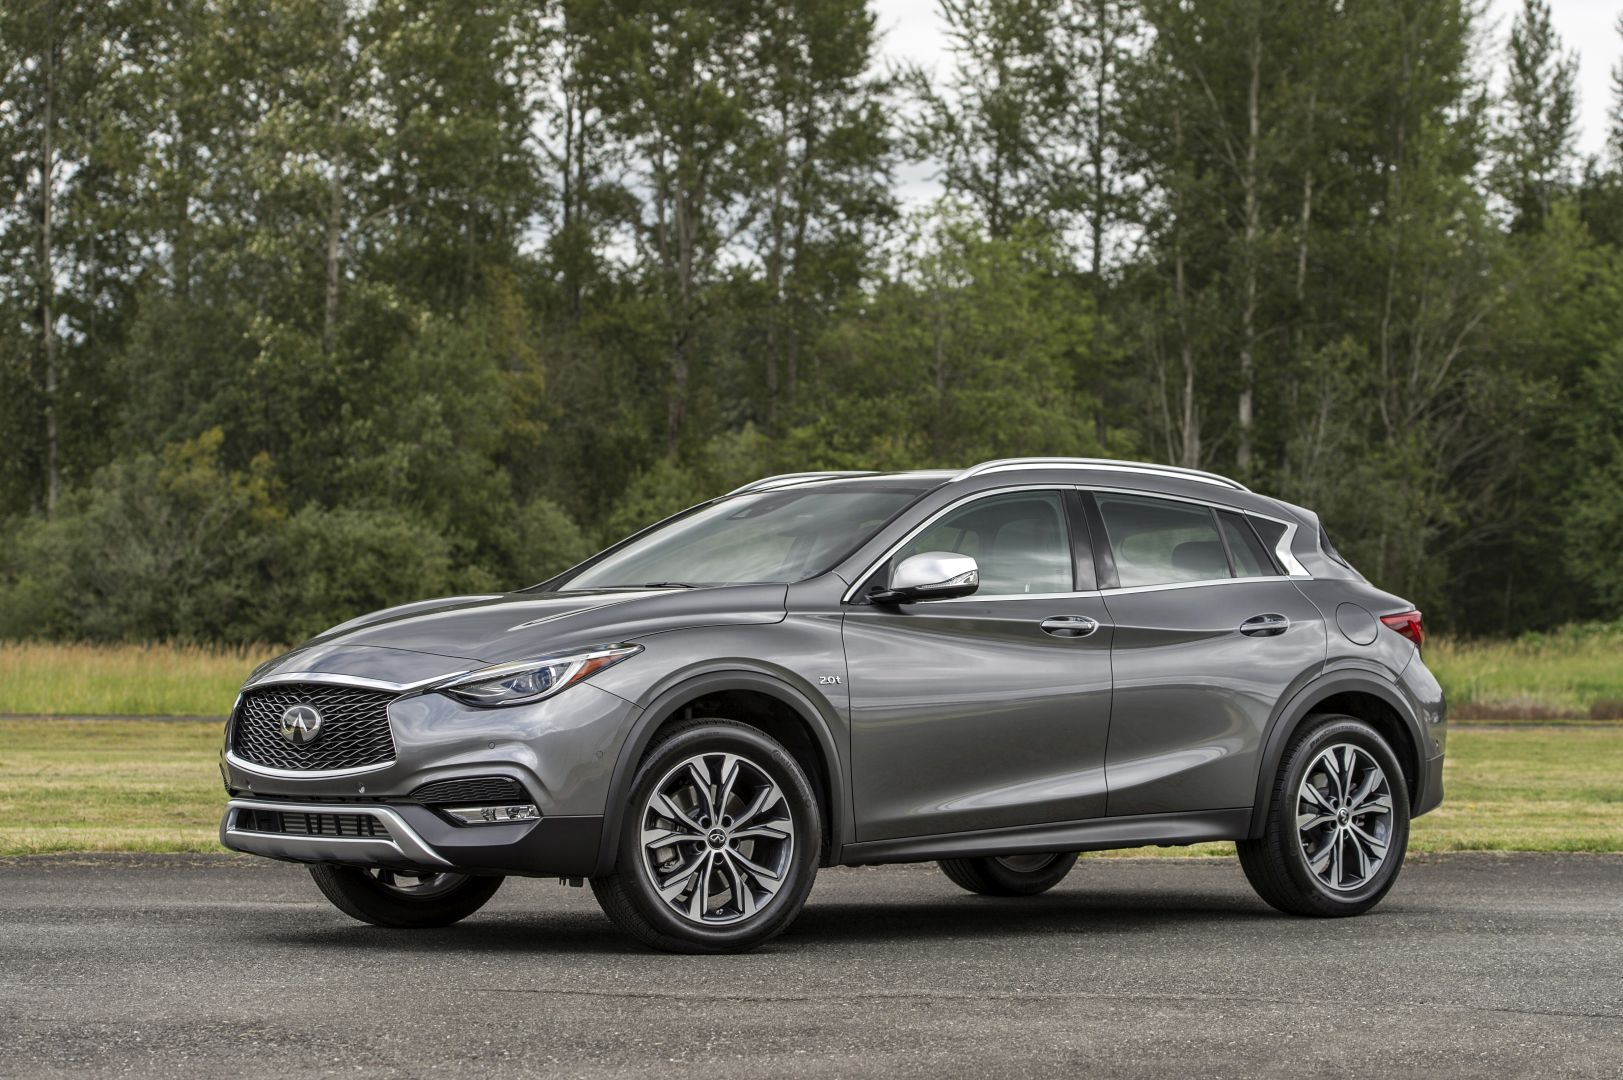 Infiniti's killing off the QX30, and pulling out of Western Europe